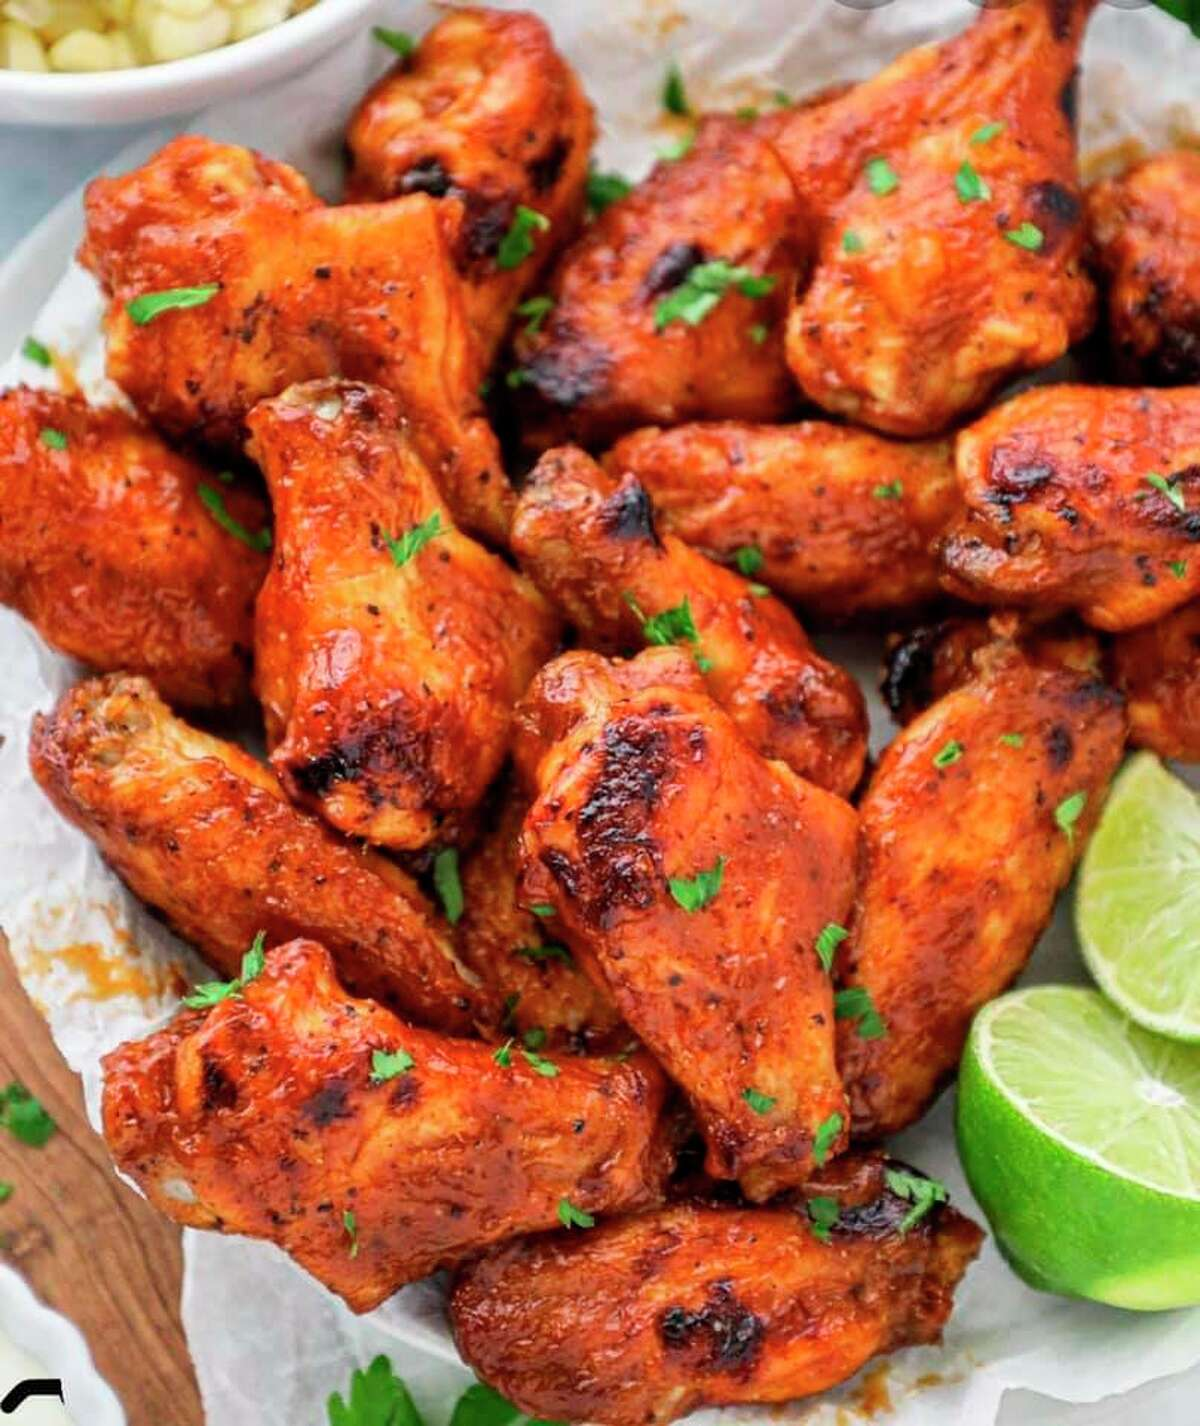 """Wingz & Thingz,Ron Gokey's originalfood truck, is back at it in Area 31 in Beulah, cranking out wings and """"pub grub"""". (Courtesy Photo)"""